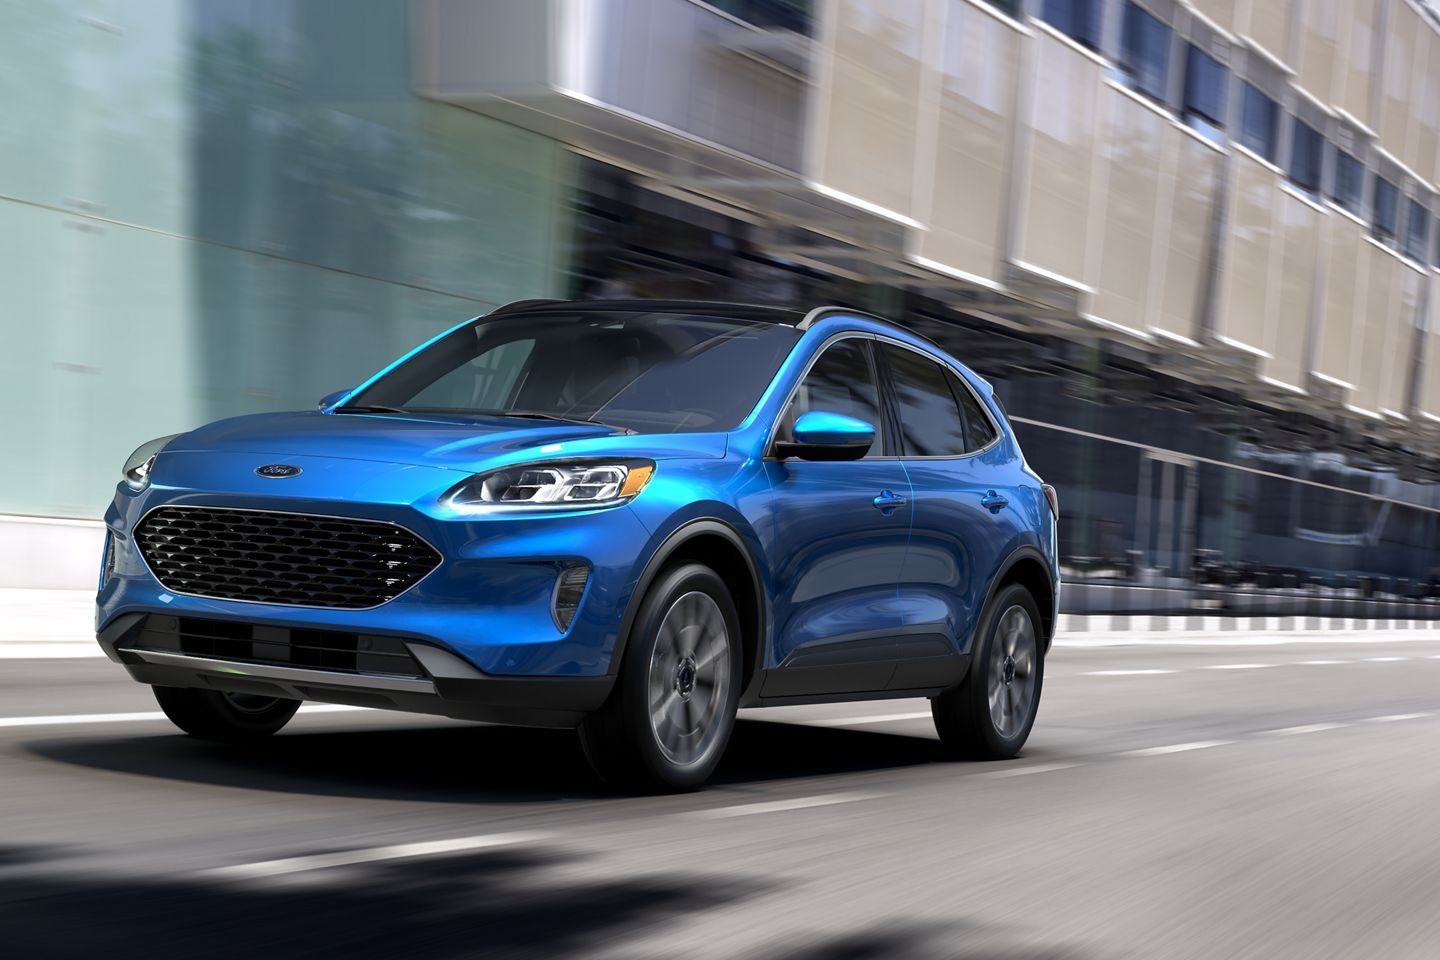 New Ford Escape Wins Two Top Spots from Wards and J.D. Power